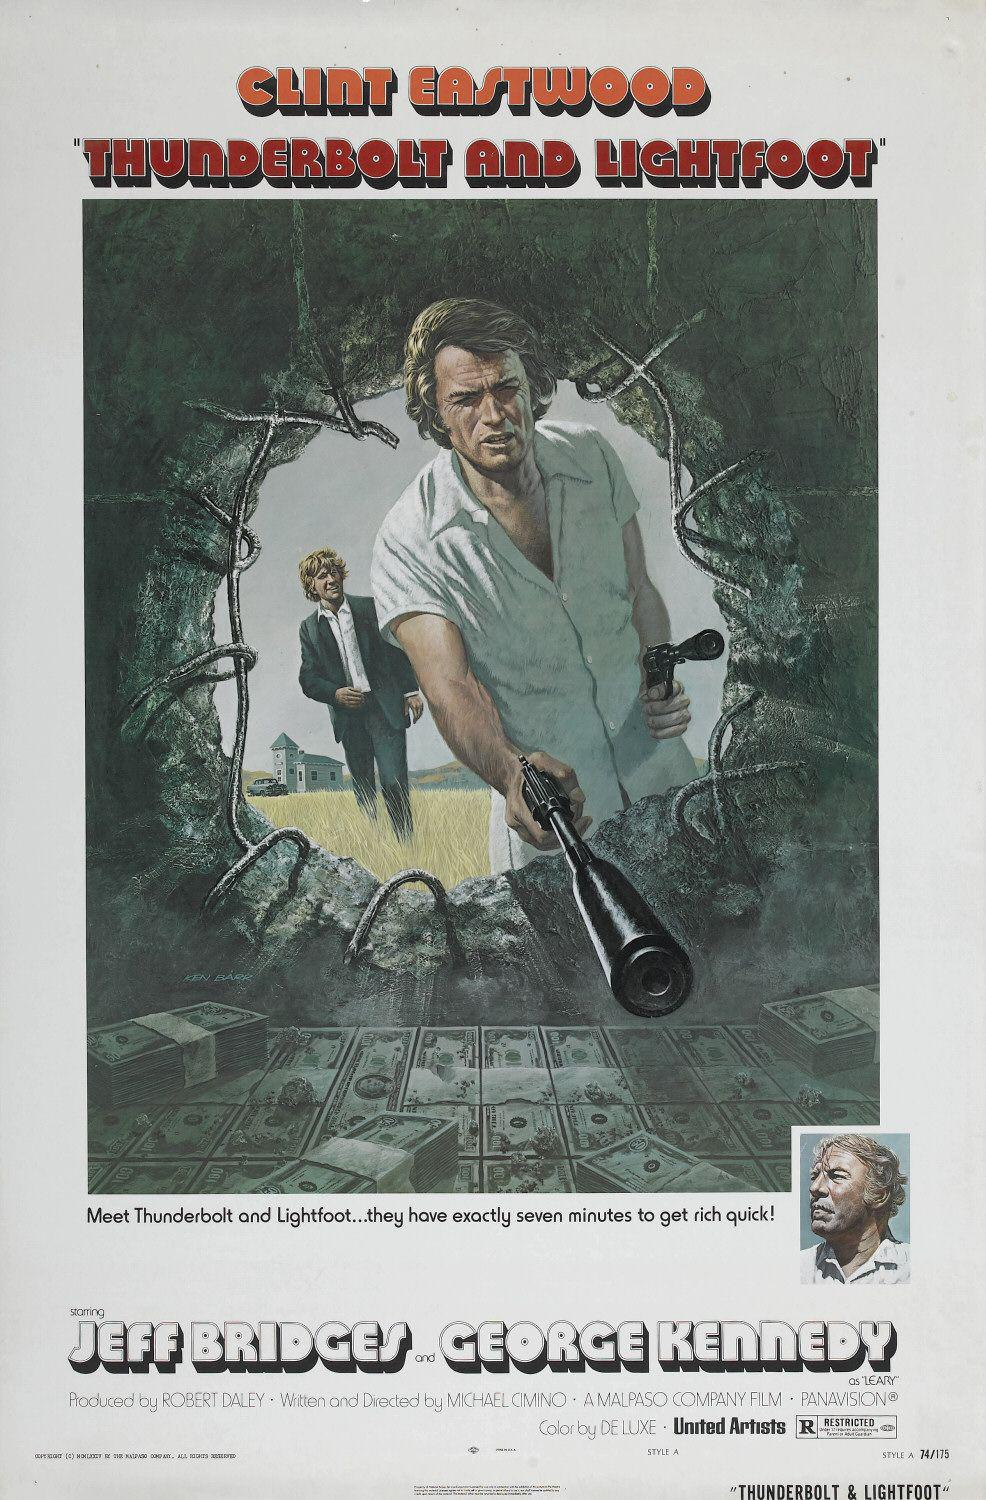 Una Calibro 20 per lo Specialista - Thunderbolt and Lightfoot - Clint Eastwood